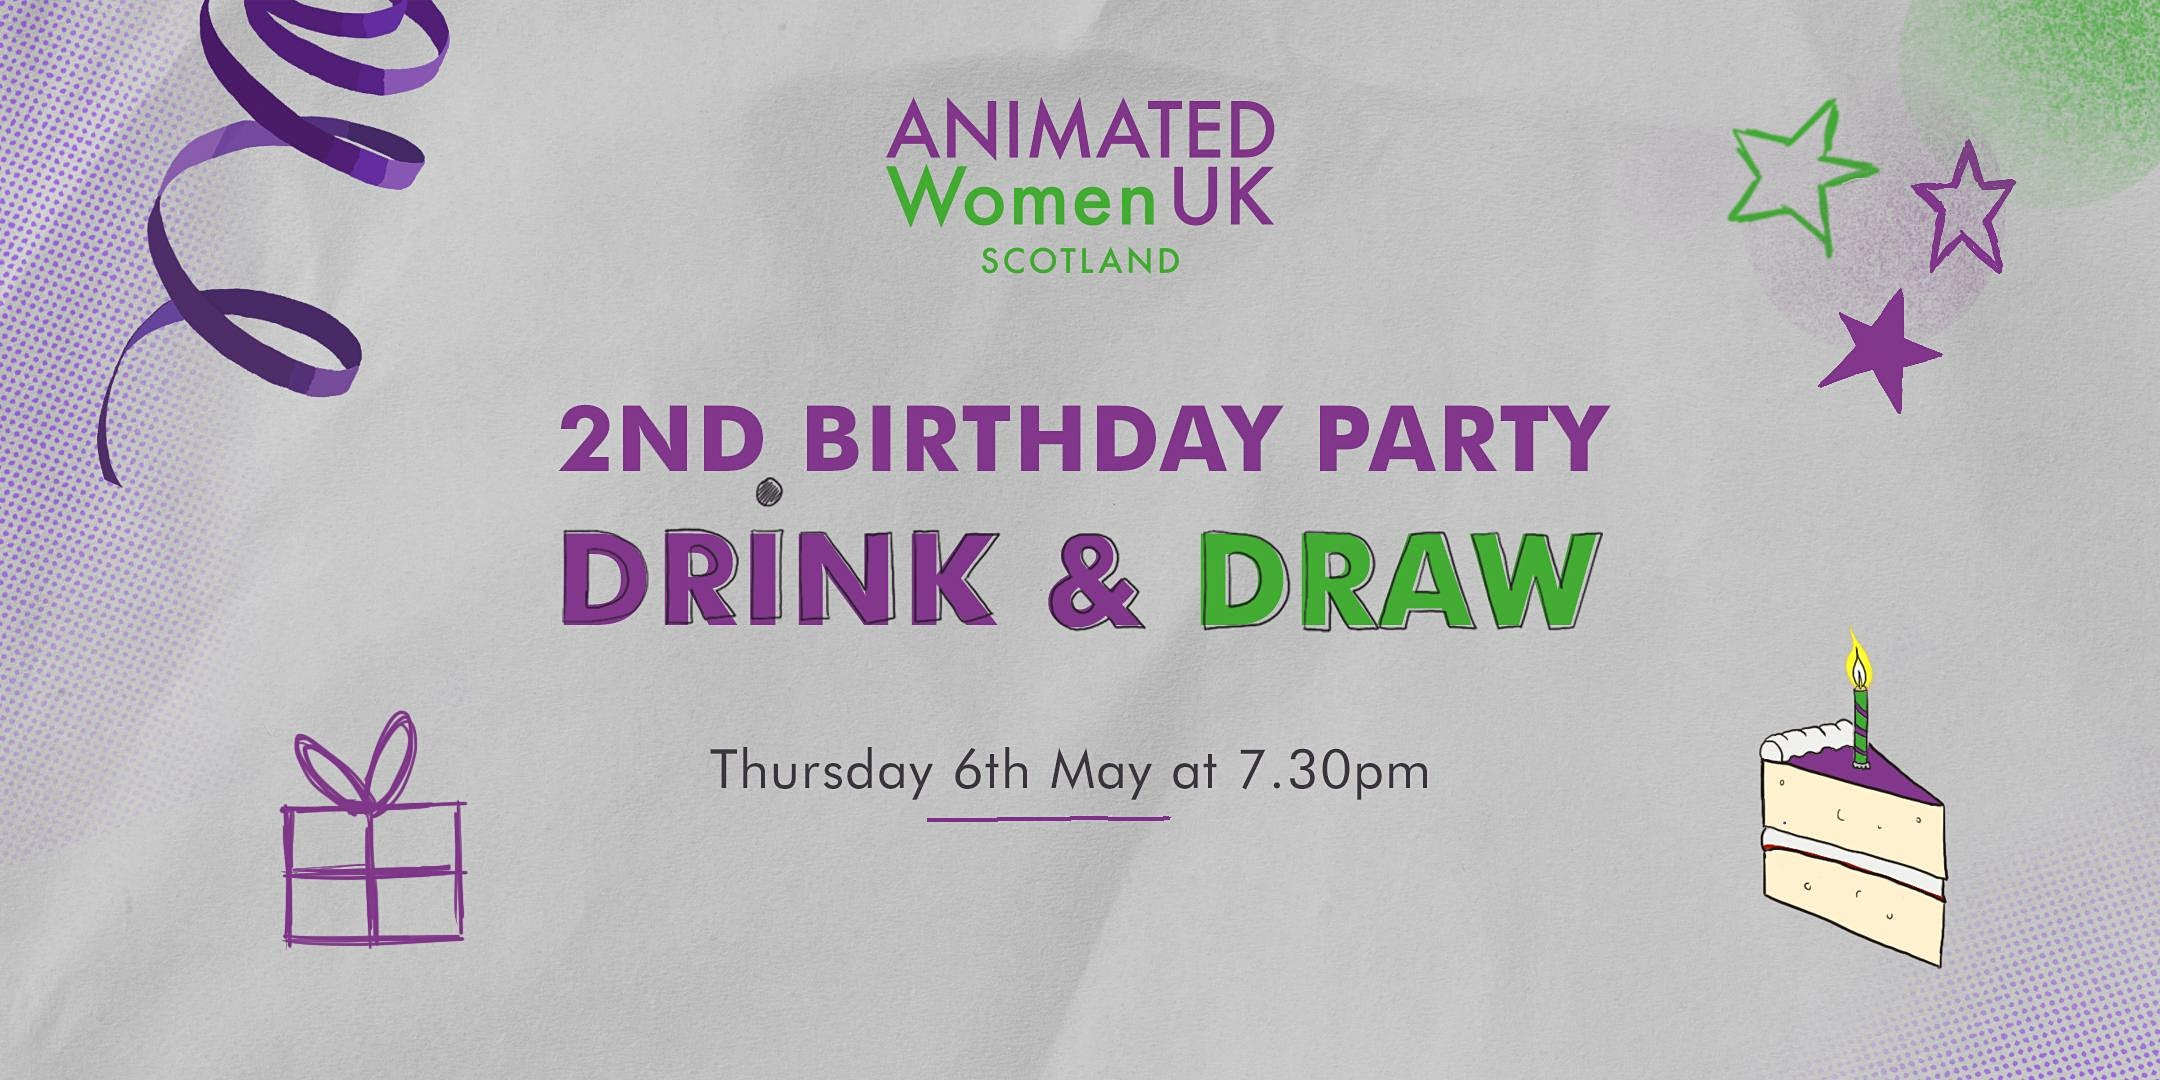 Birthday Drink and Draw – Animated Women UK Scotland's 2nd Birthday Online Drink and Draw! Poster